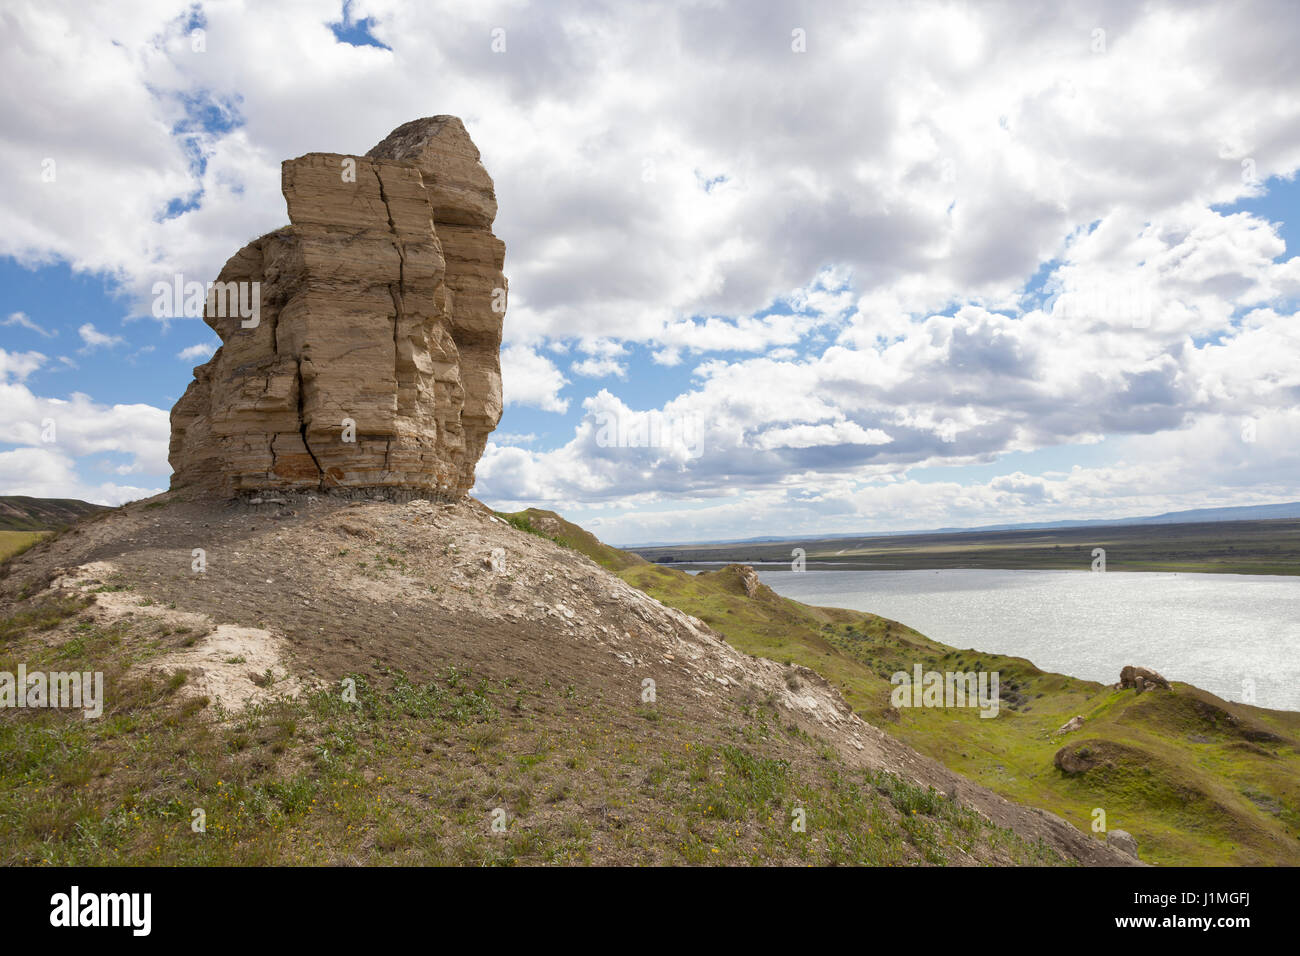 Franklin County, Washington: Rocky outcrop on the White Bluffs along the Columbia River at Hanford Reach National - Stock Image